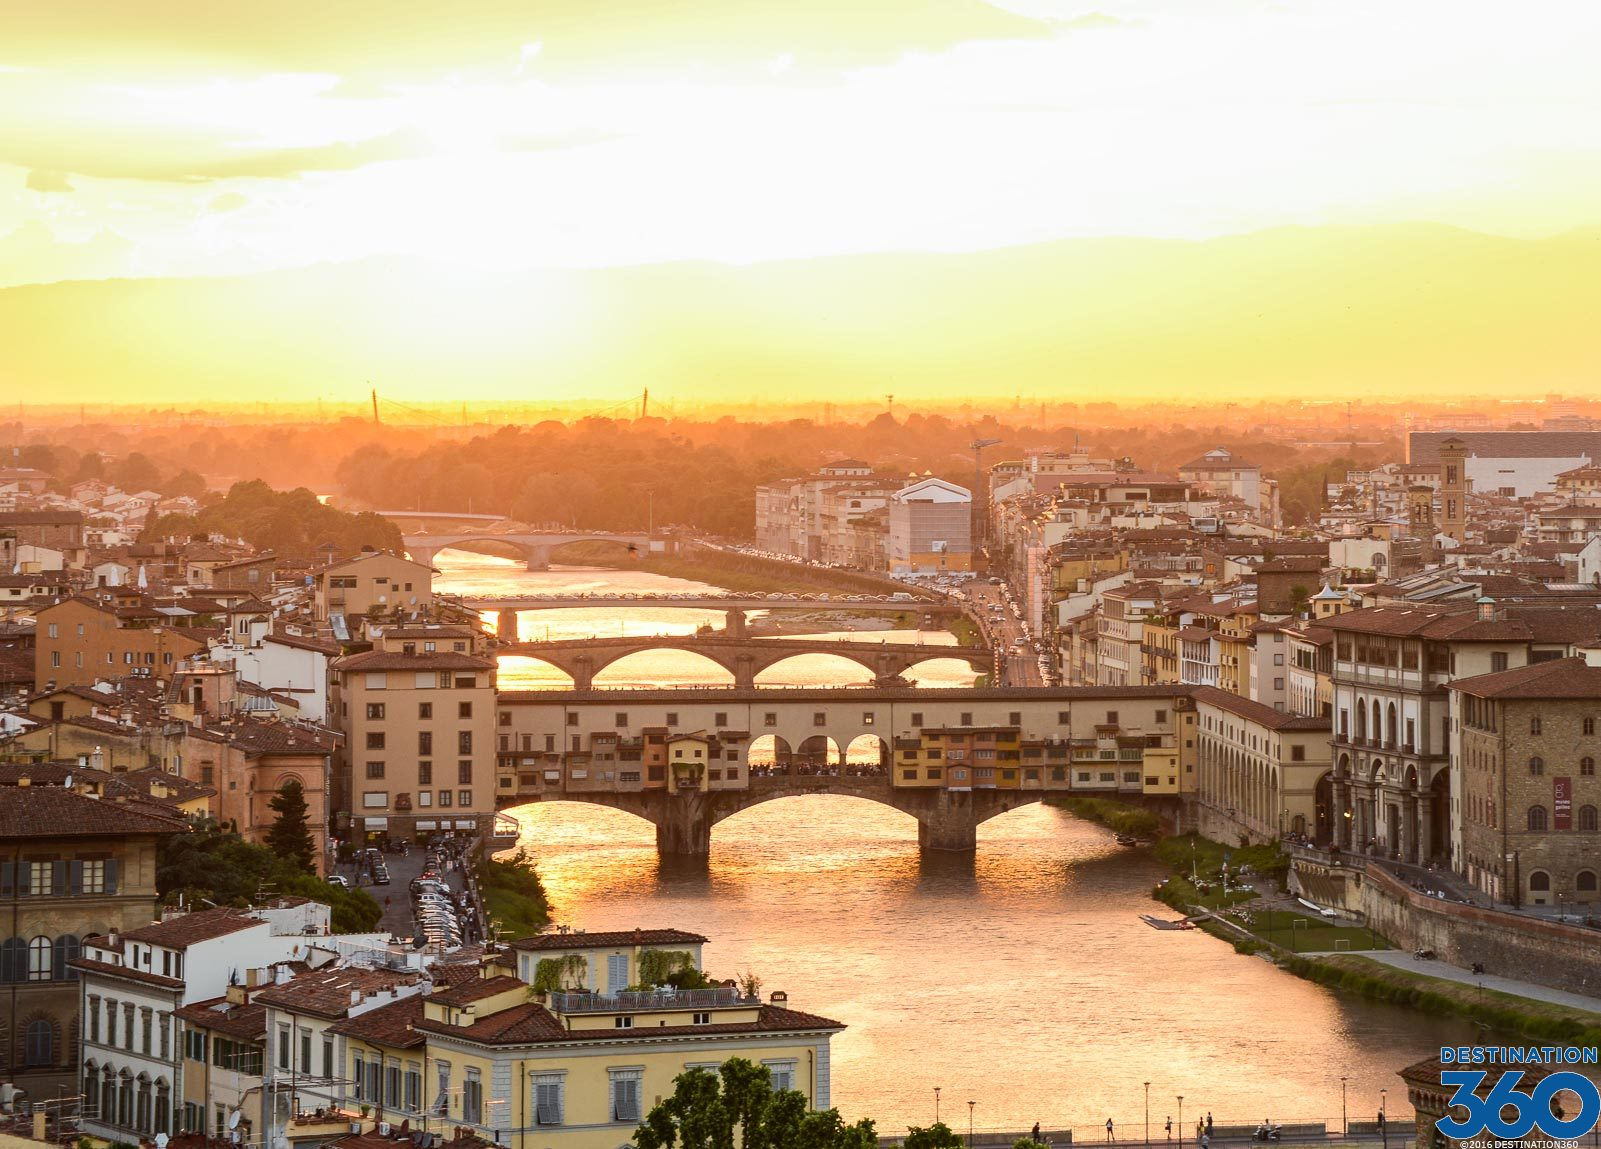 Arno River River Through Florence Bridges Over The